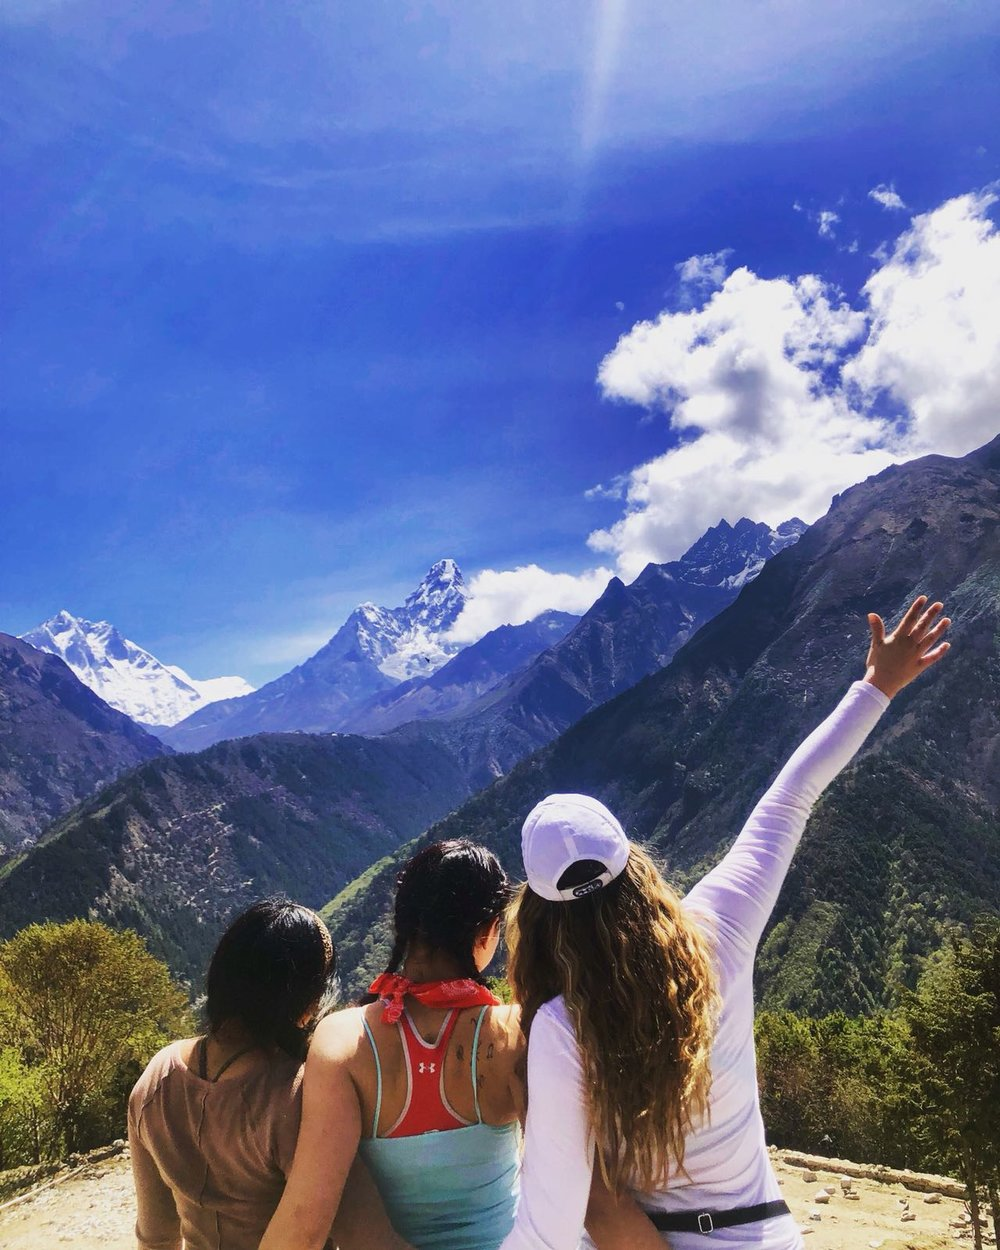 Earn discounts, add invaluable resume & leadership experience, travel with friends and trek to the base of the world's tallest mountain